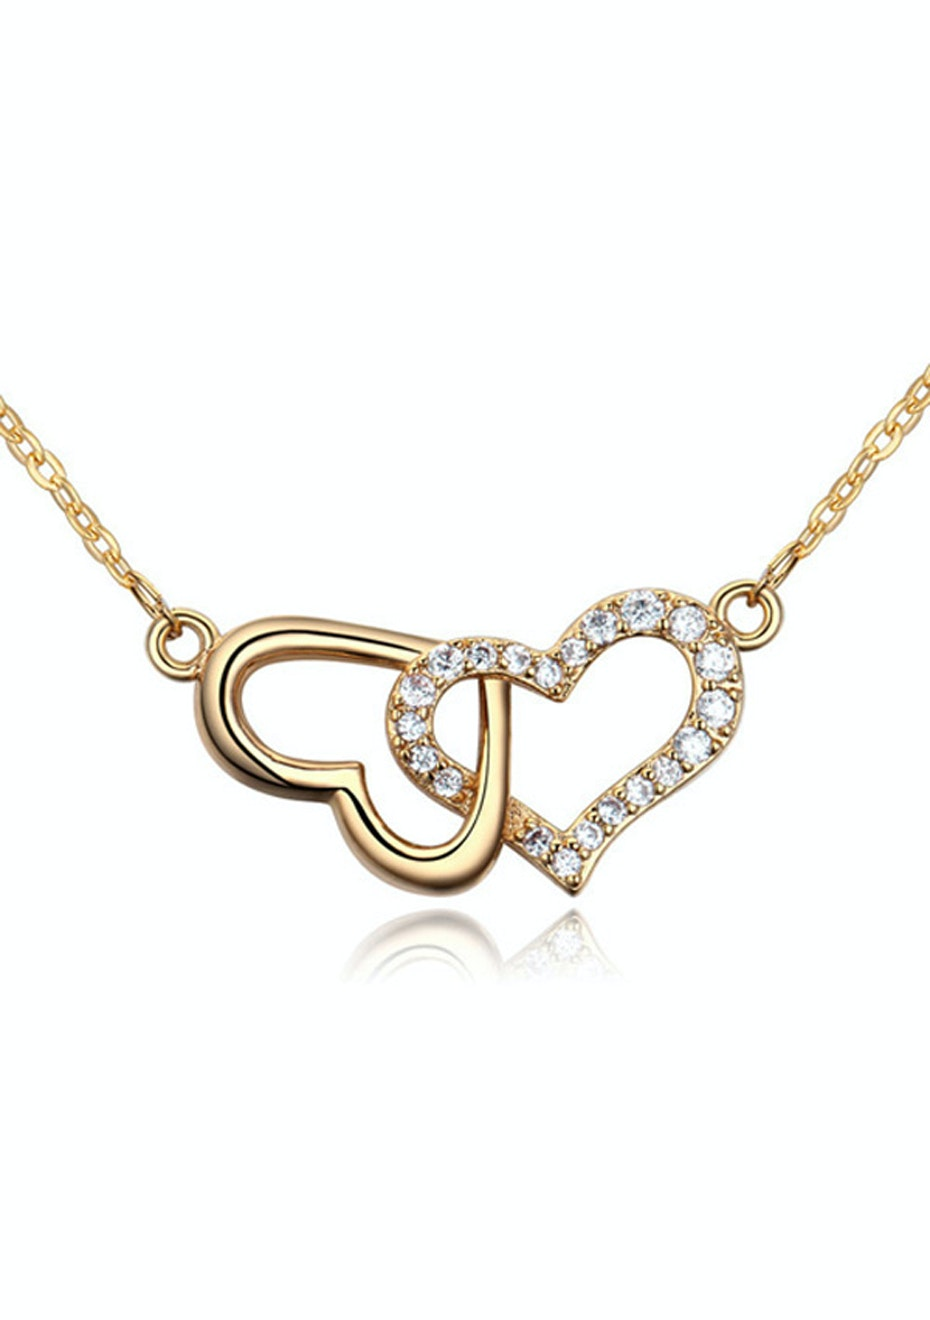 Linked Heart Pendant Necklace Embellished with Crystals from Swarovski -G